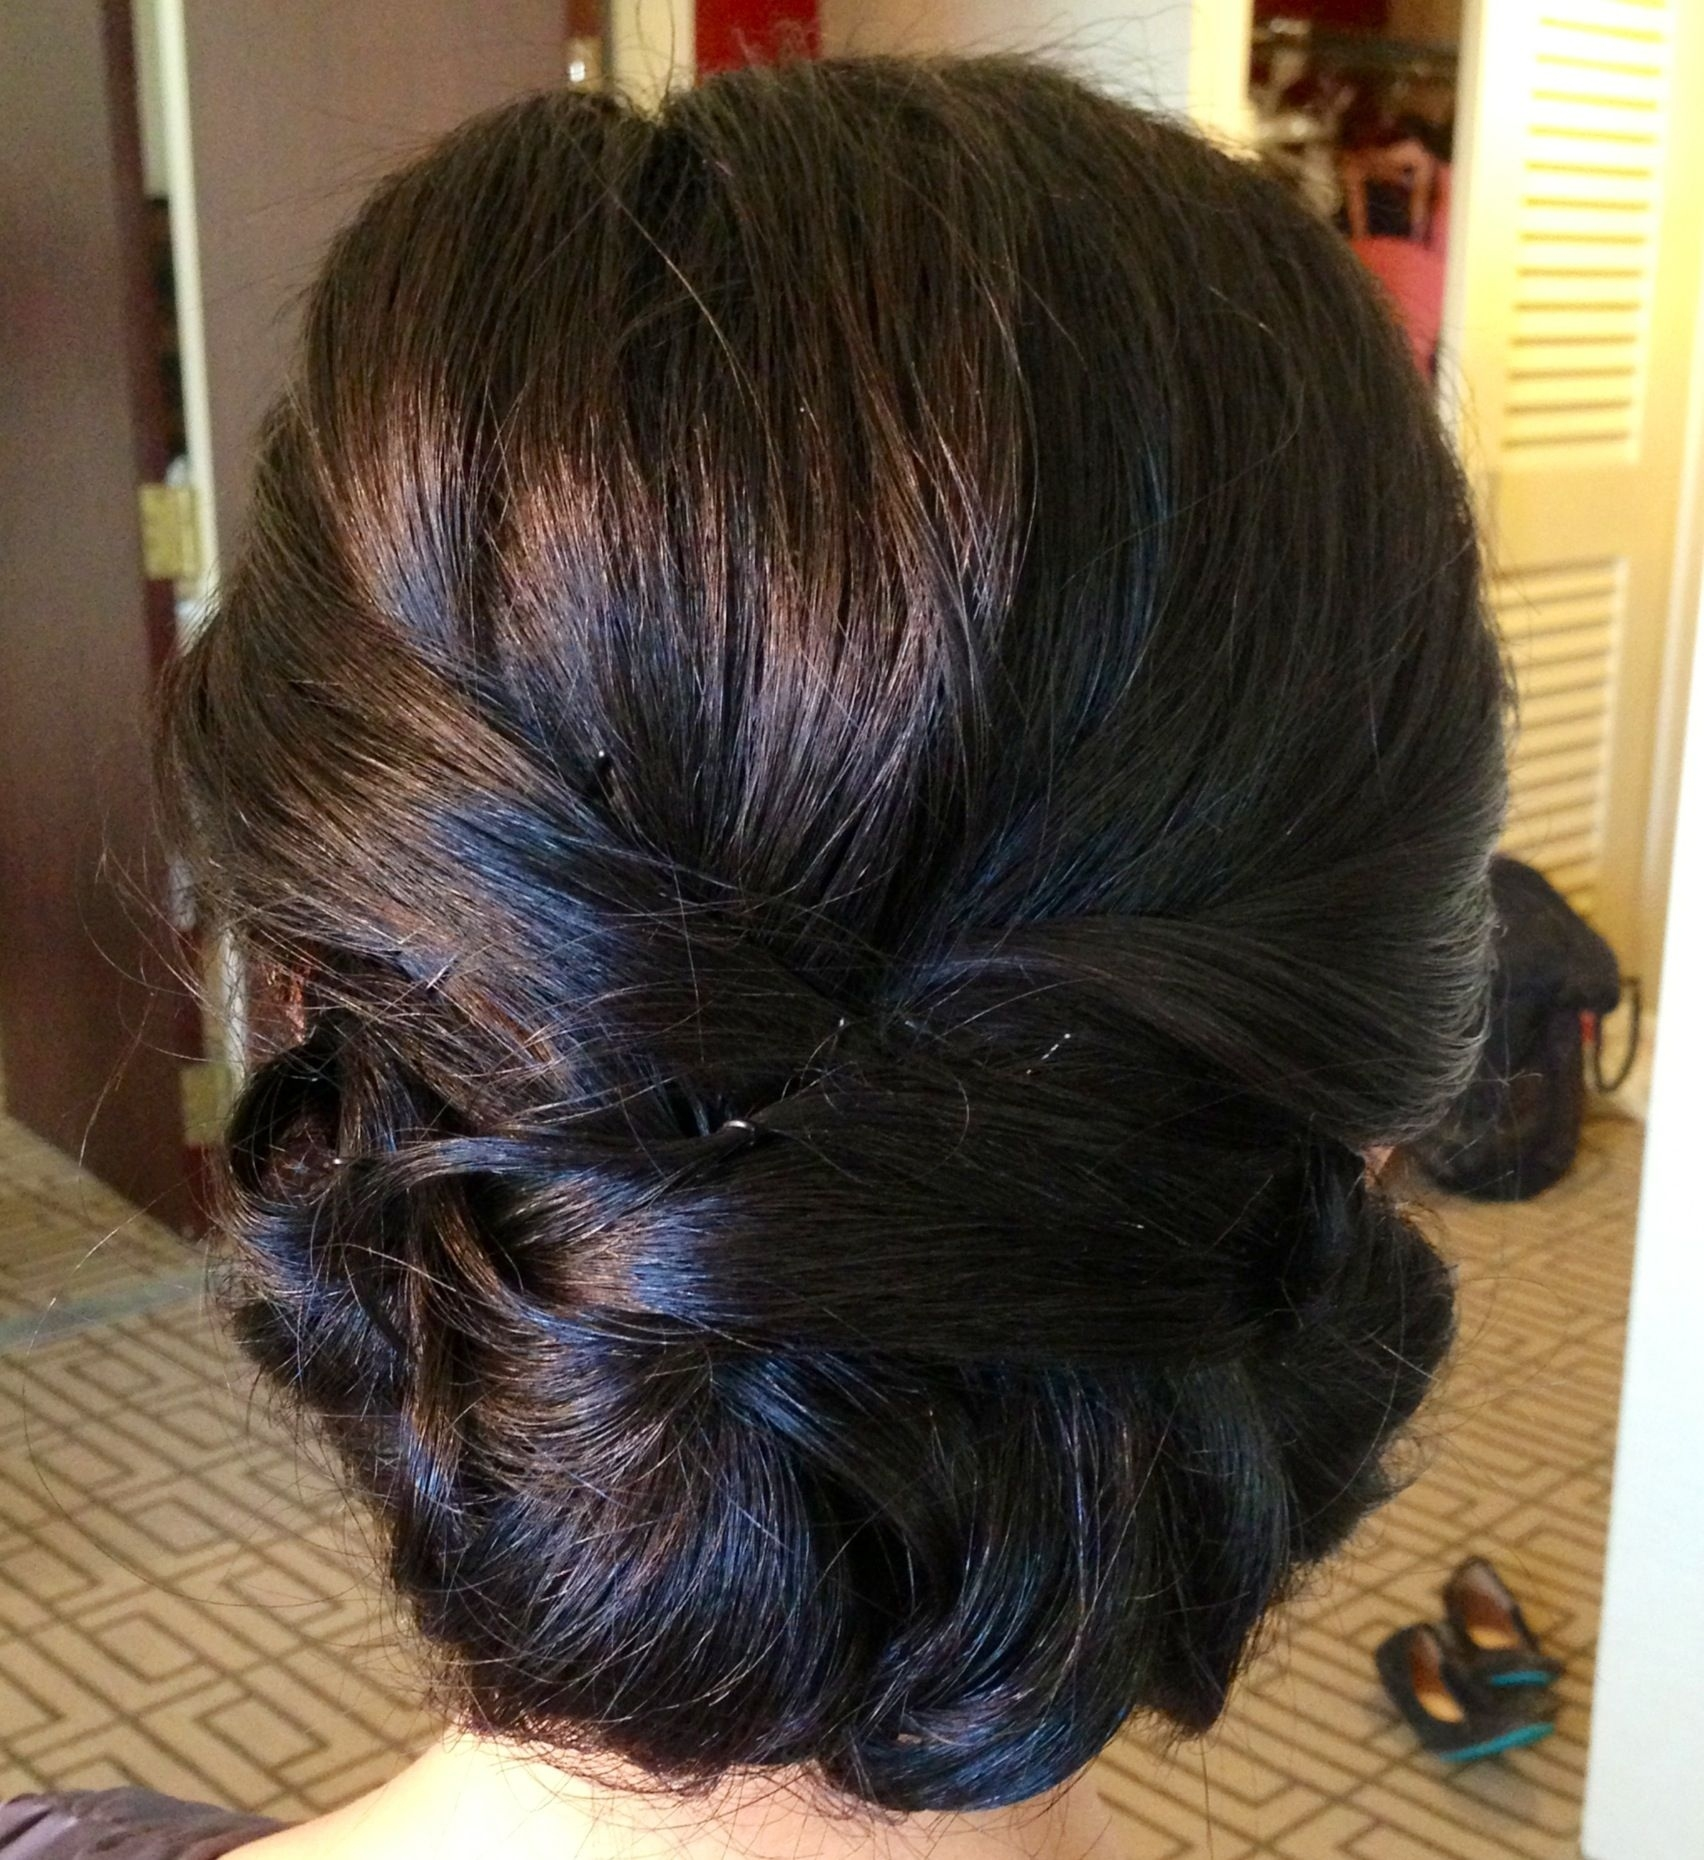 16 Fascinating Asian Hairstyles | May 2018 Wedding | Bridal Hair with regard to Amazing Wedding Hairstyles For Asian Hair